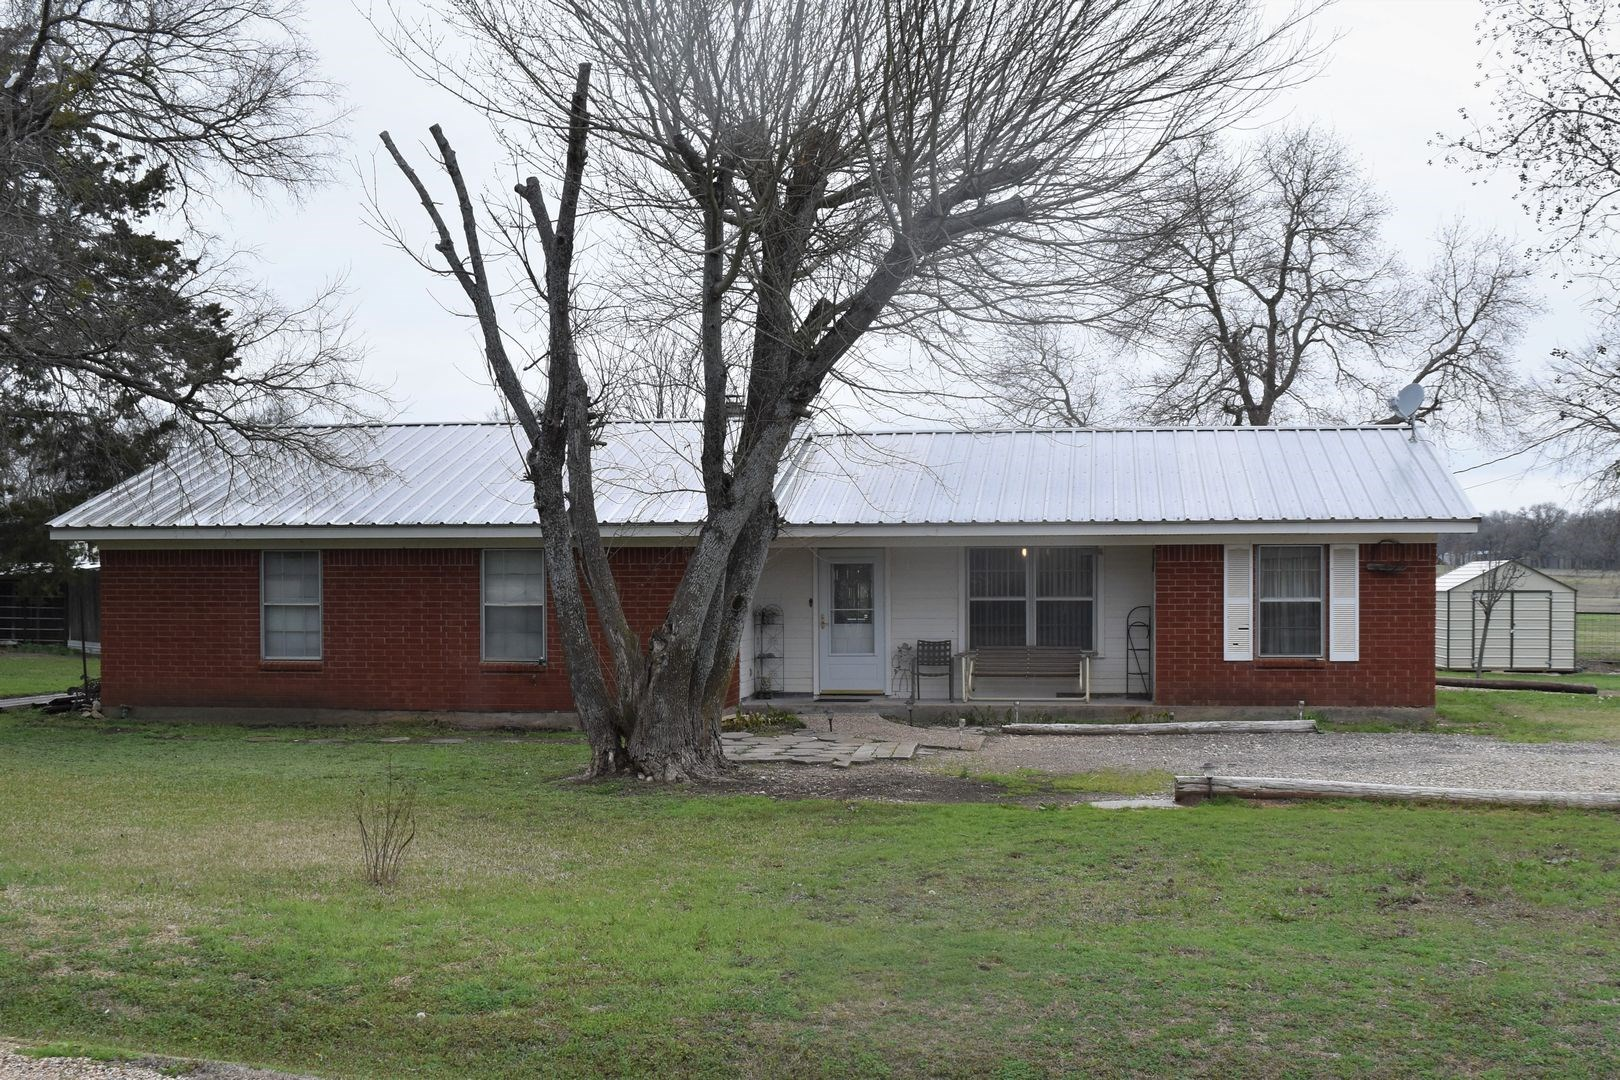 Country Home on acreage, For Sale West,TX Mclennan County